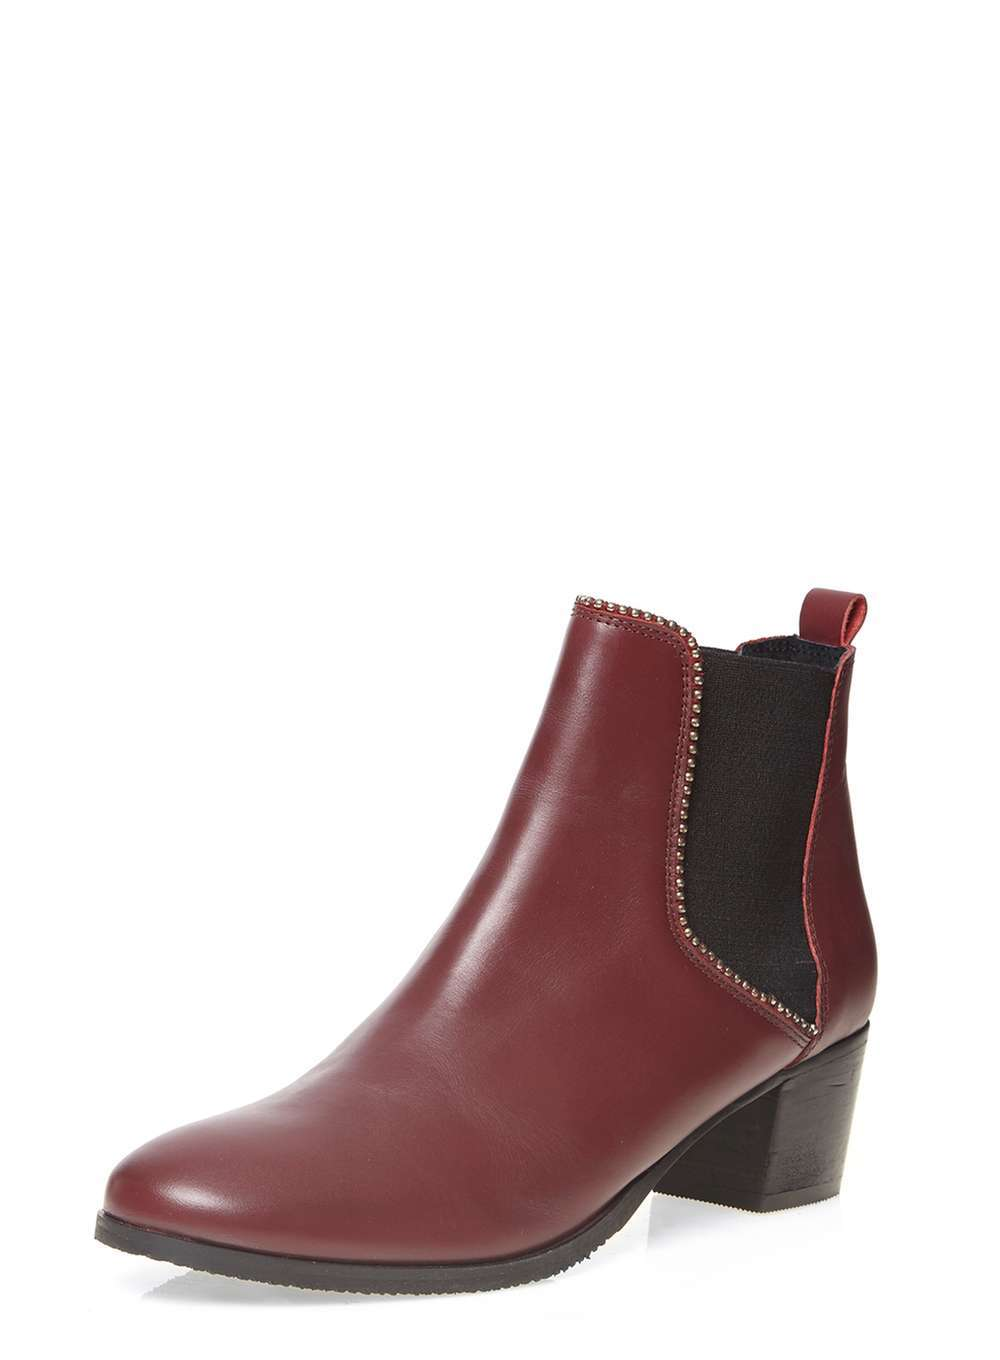 Womens **Ravel Cherry Ankle Boots Red - predominant colour: burgundy; secondary colour: black; occasions: casual, creative work; material: leather; heel height: mid; heel: block; toe: round toe; boot length: ankle boot; finish: plain; pattern: plain; style: chelsea; season: a/w 2016; wardrobe: highlight